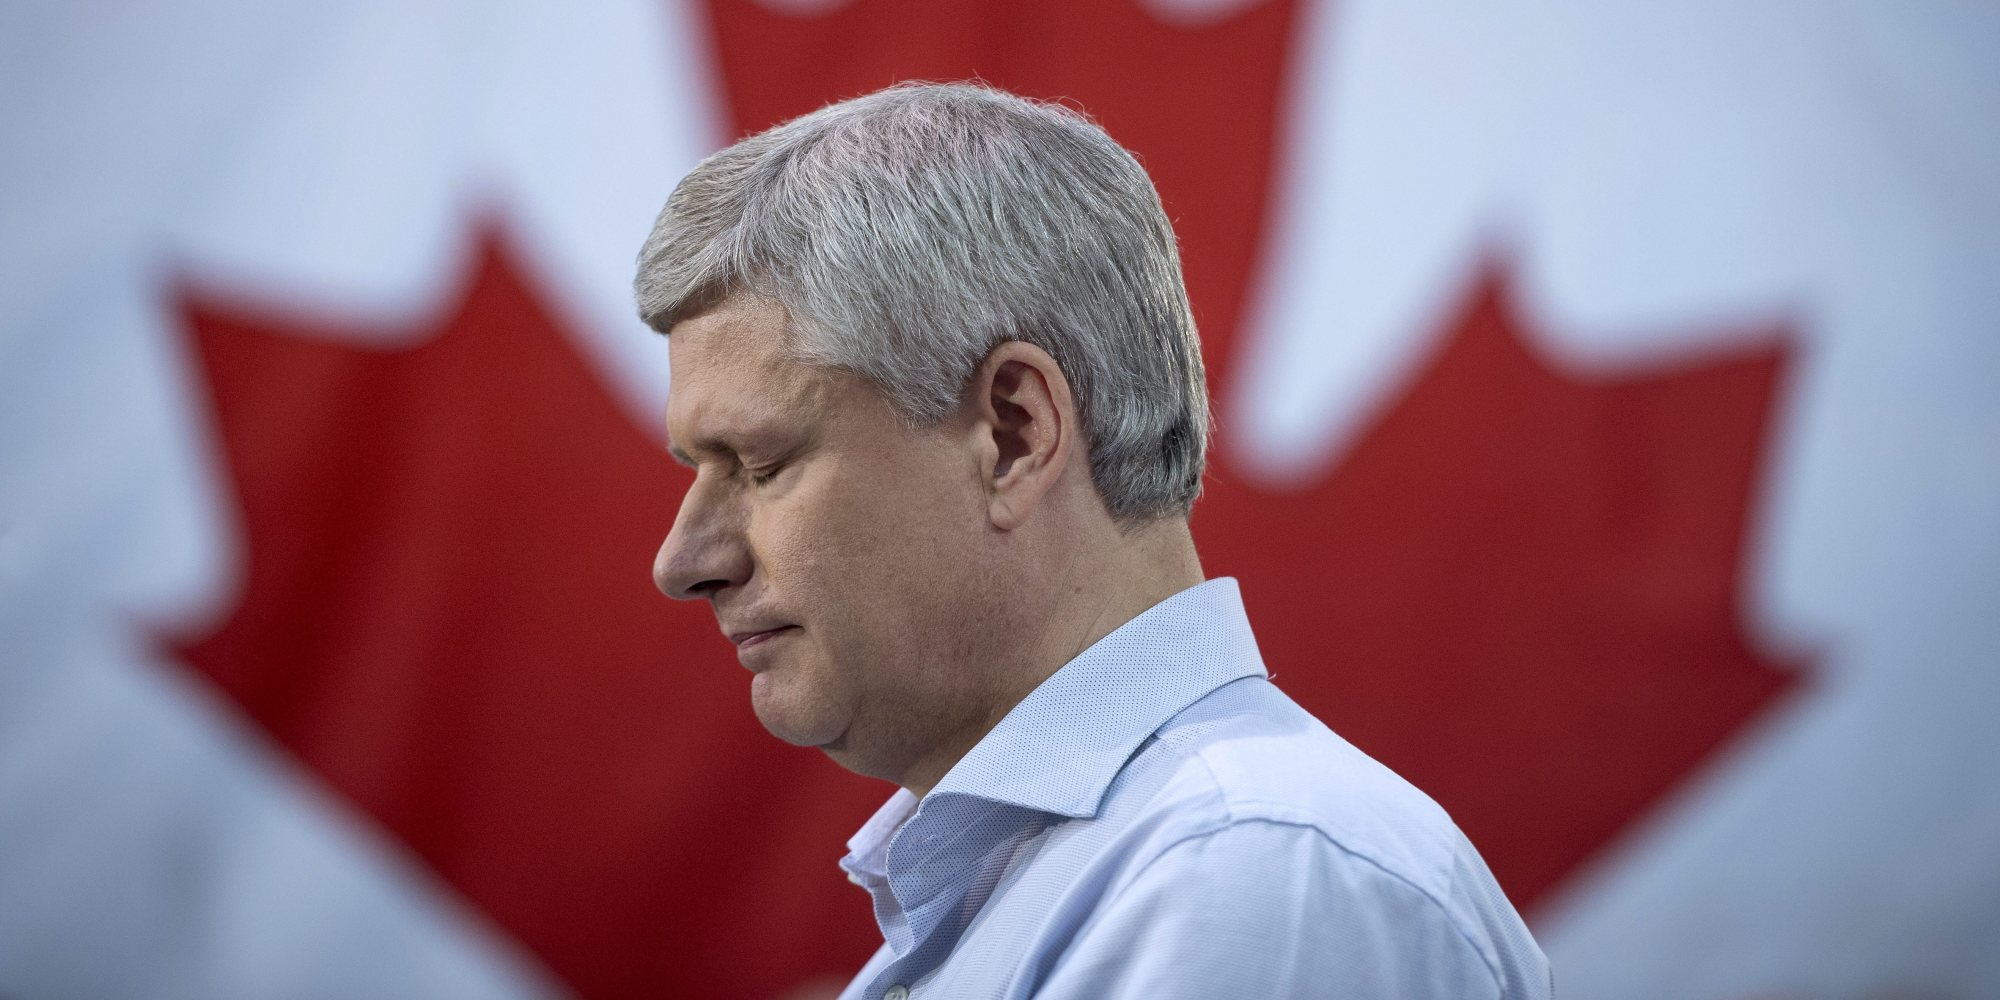 Conservative leader Stephen Harper pauses for a moment as he attends a campaign event at the J.P. Bowman tool and die company  in Brantford, Ont., Wednesday, Oct. 14, 2015.   THE CANADIAN PRESS/Jonathan Hayward